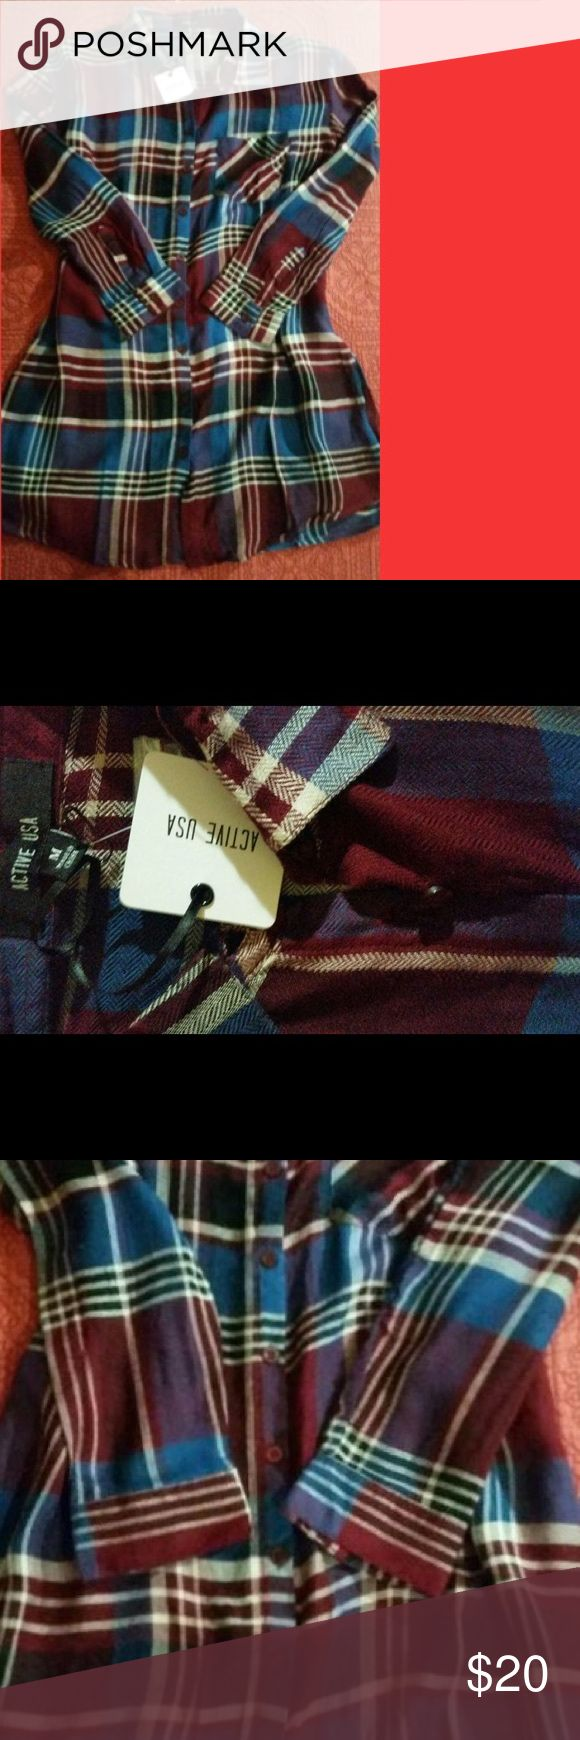 New Long Flannel Shirt Size M, new with tags Tops Button Down Shirts